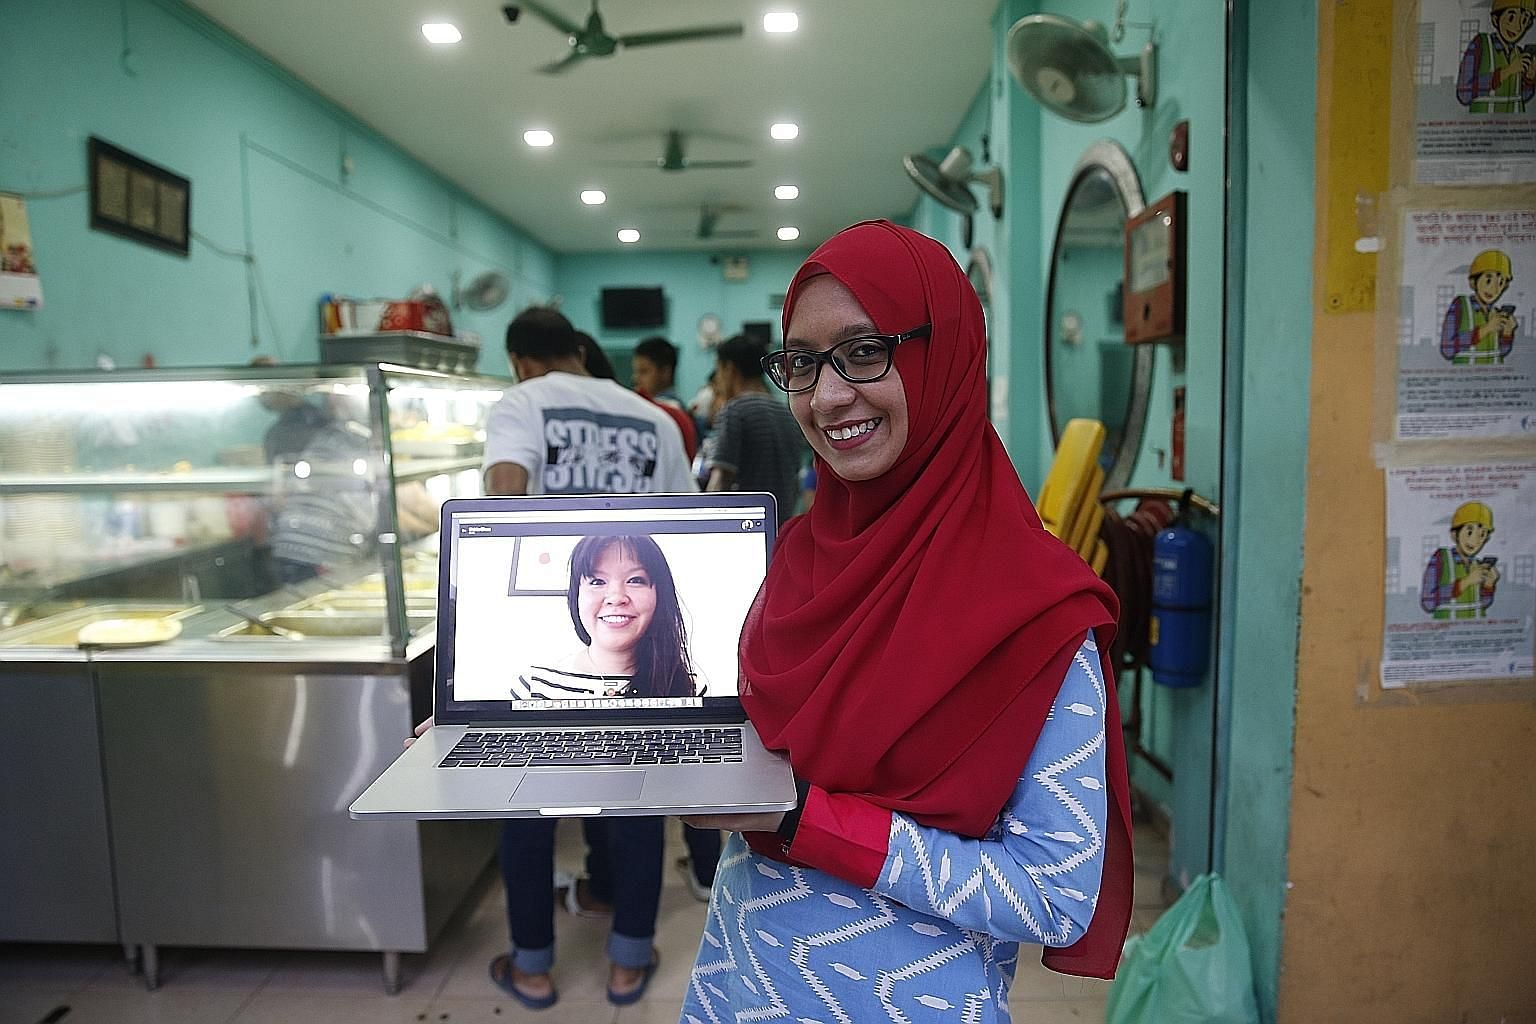 Crowdfunding campaign #SGMuslims4 MigrantWorkers was started by two women, Ms Shirin Chua (on laptop screen) and Ms Ameera Begum. The campaign, which had an initial target of $10,000, has raised $58,000 in five weeks. Bangladeshi migrant worker Motin